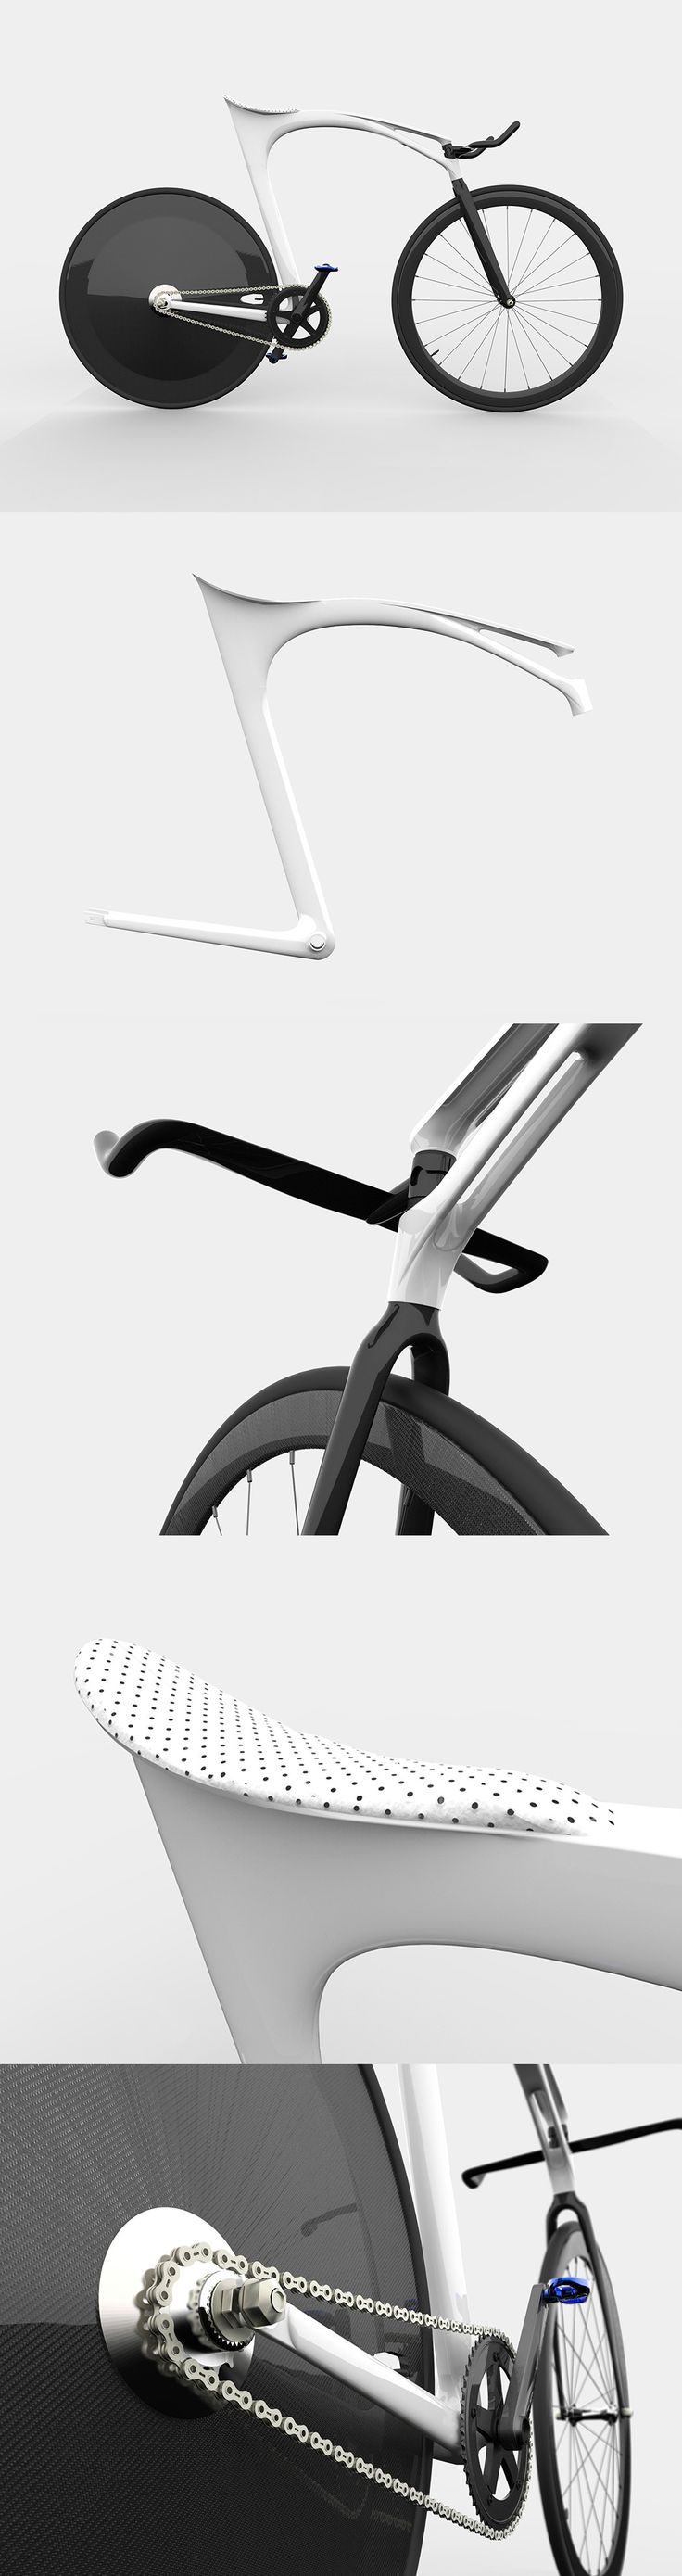 FAR-OUT FIXIE... Read more at Yanko Design https://twitter.com/yankodesign http://www.yankodesign.com/category/deals/